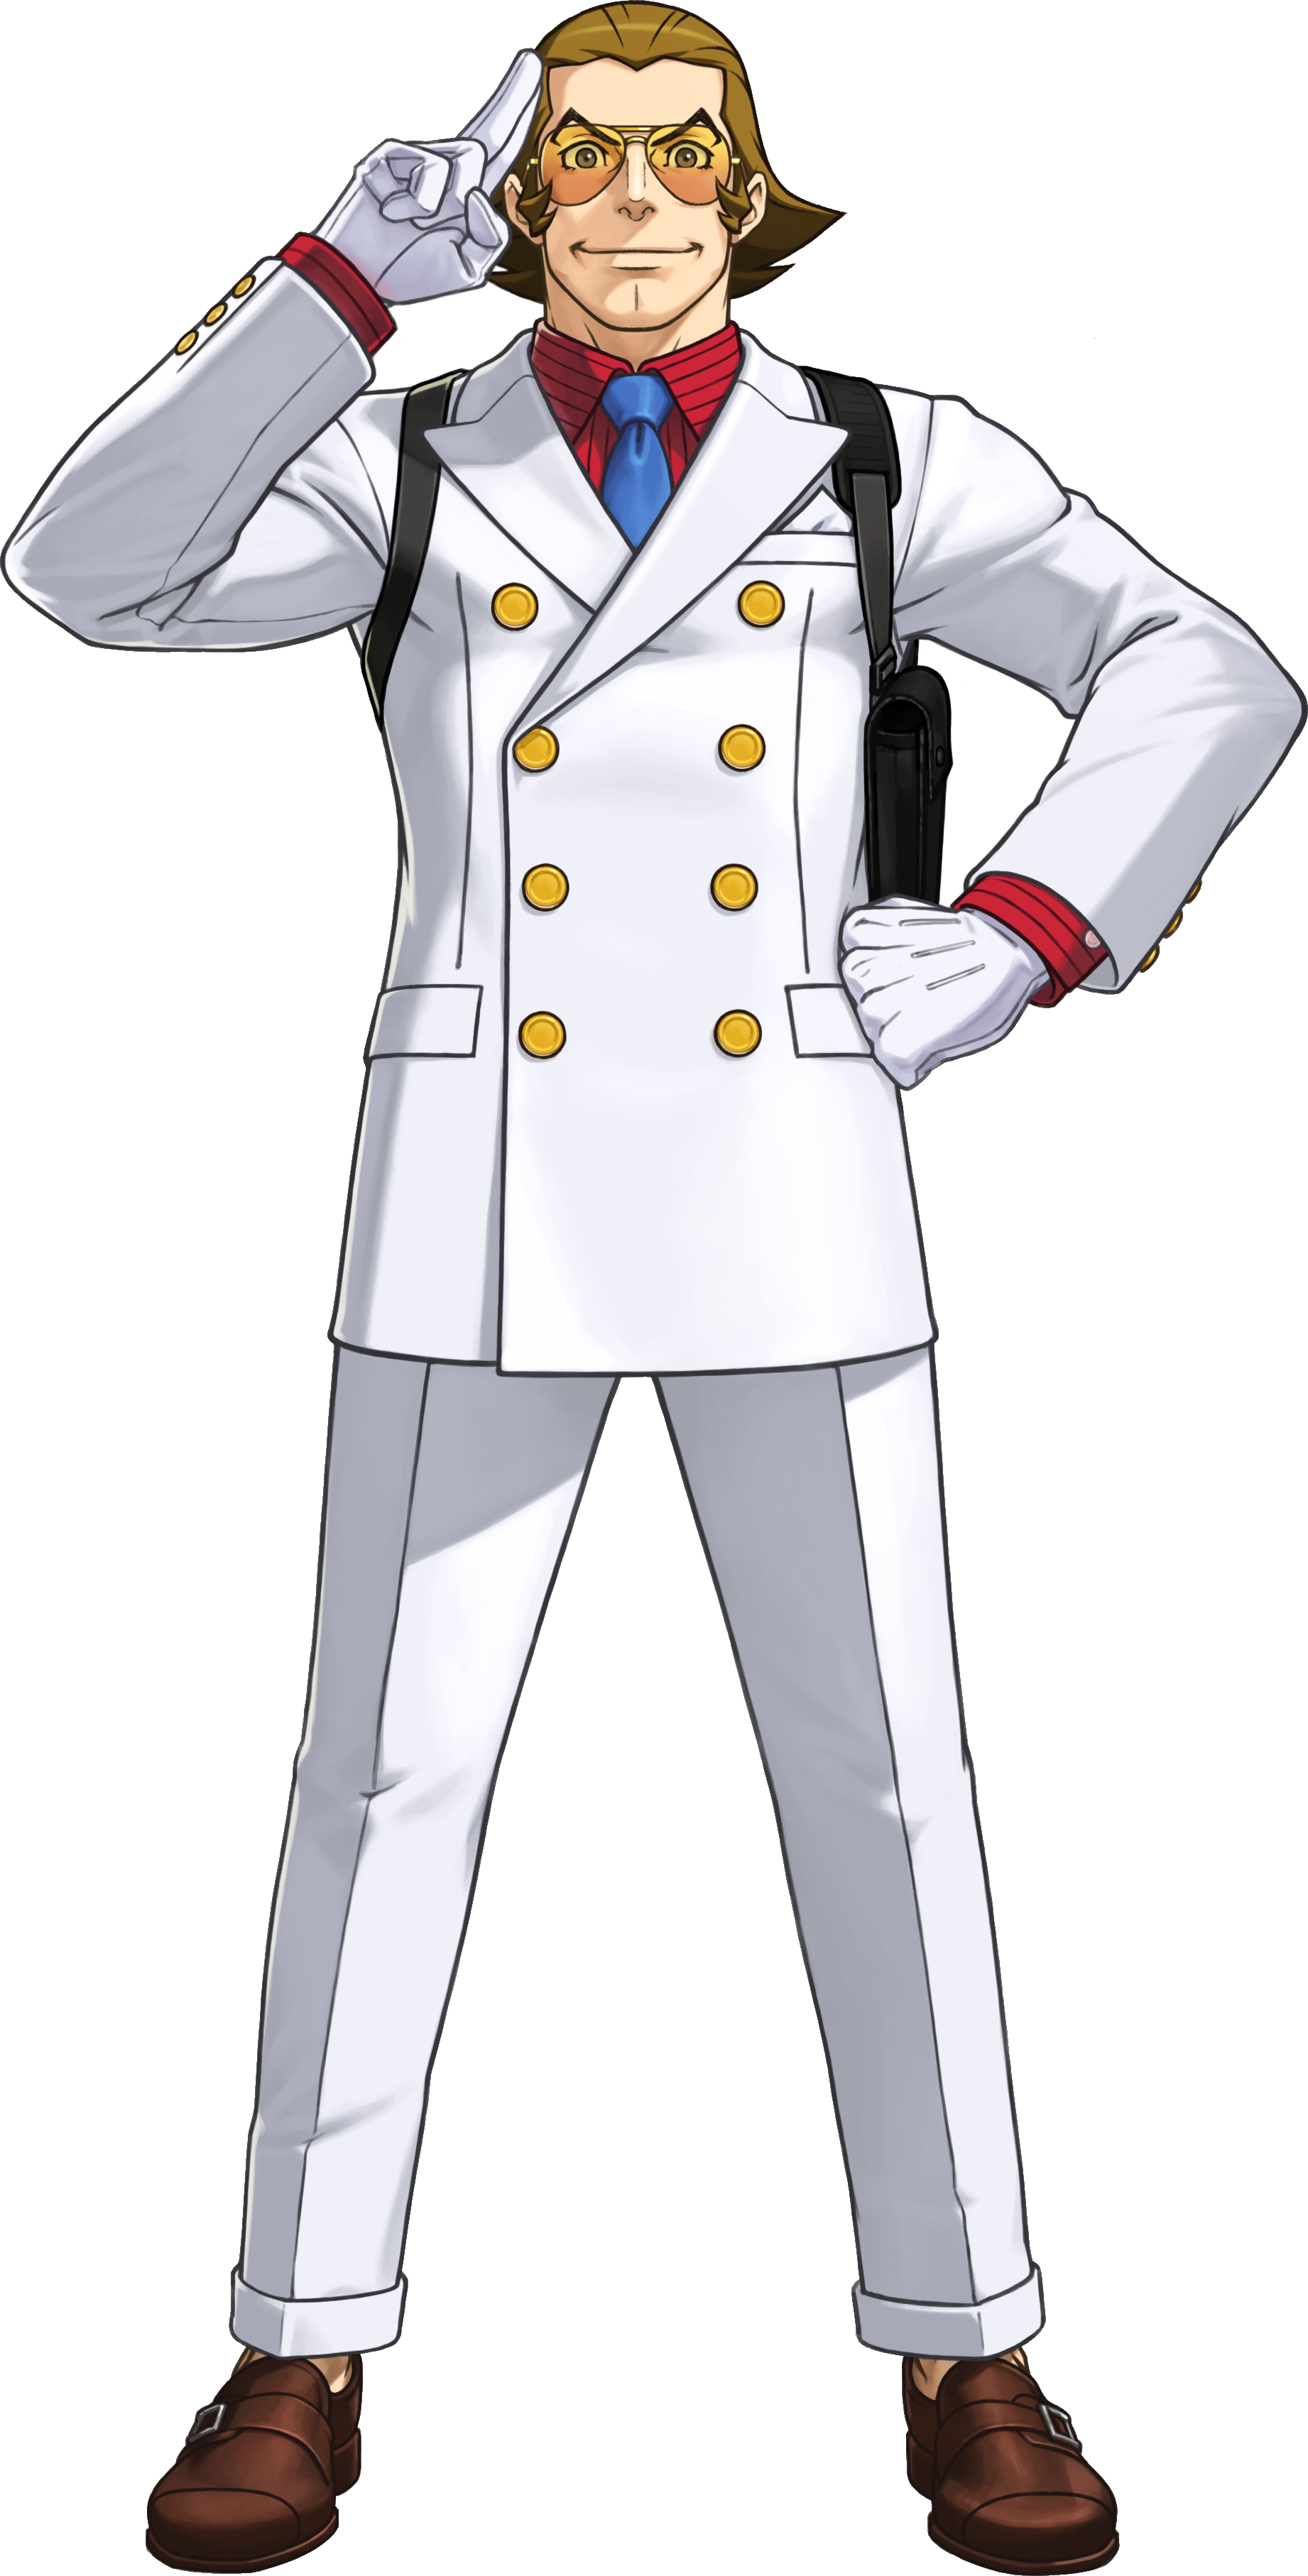 Phantom (Ace Attorney)